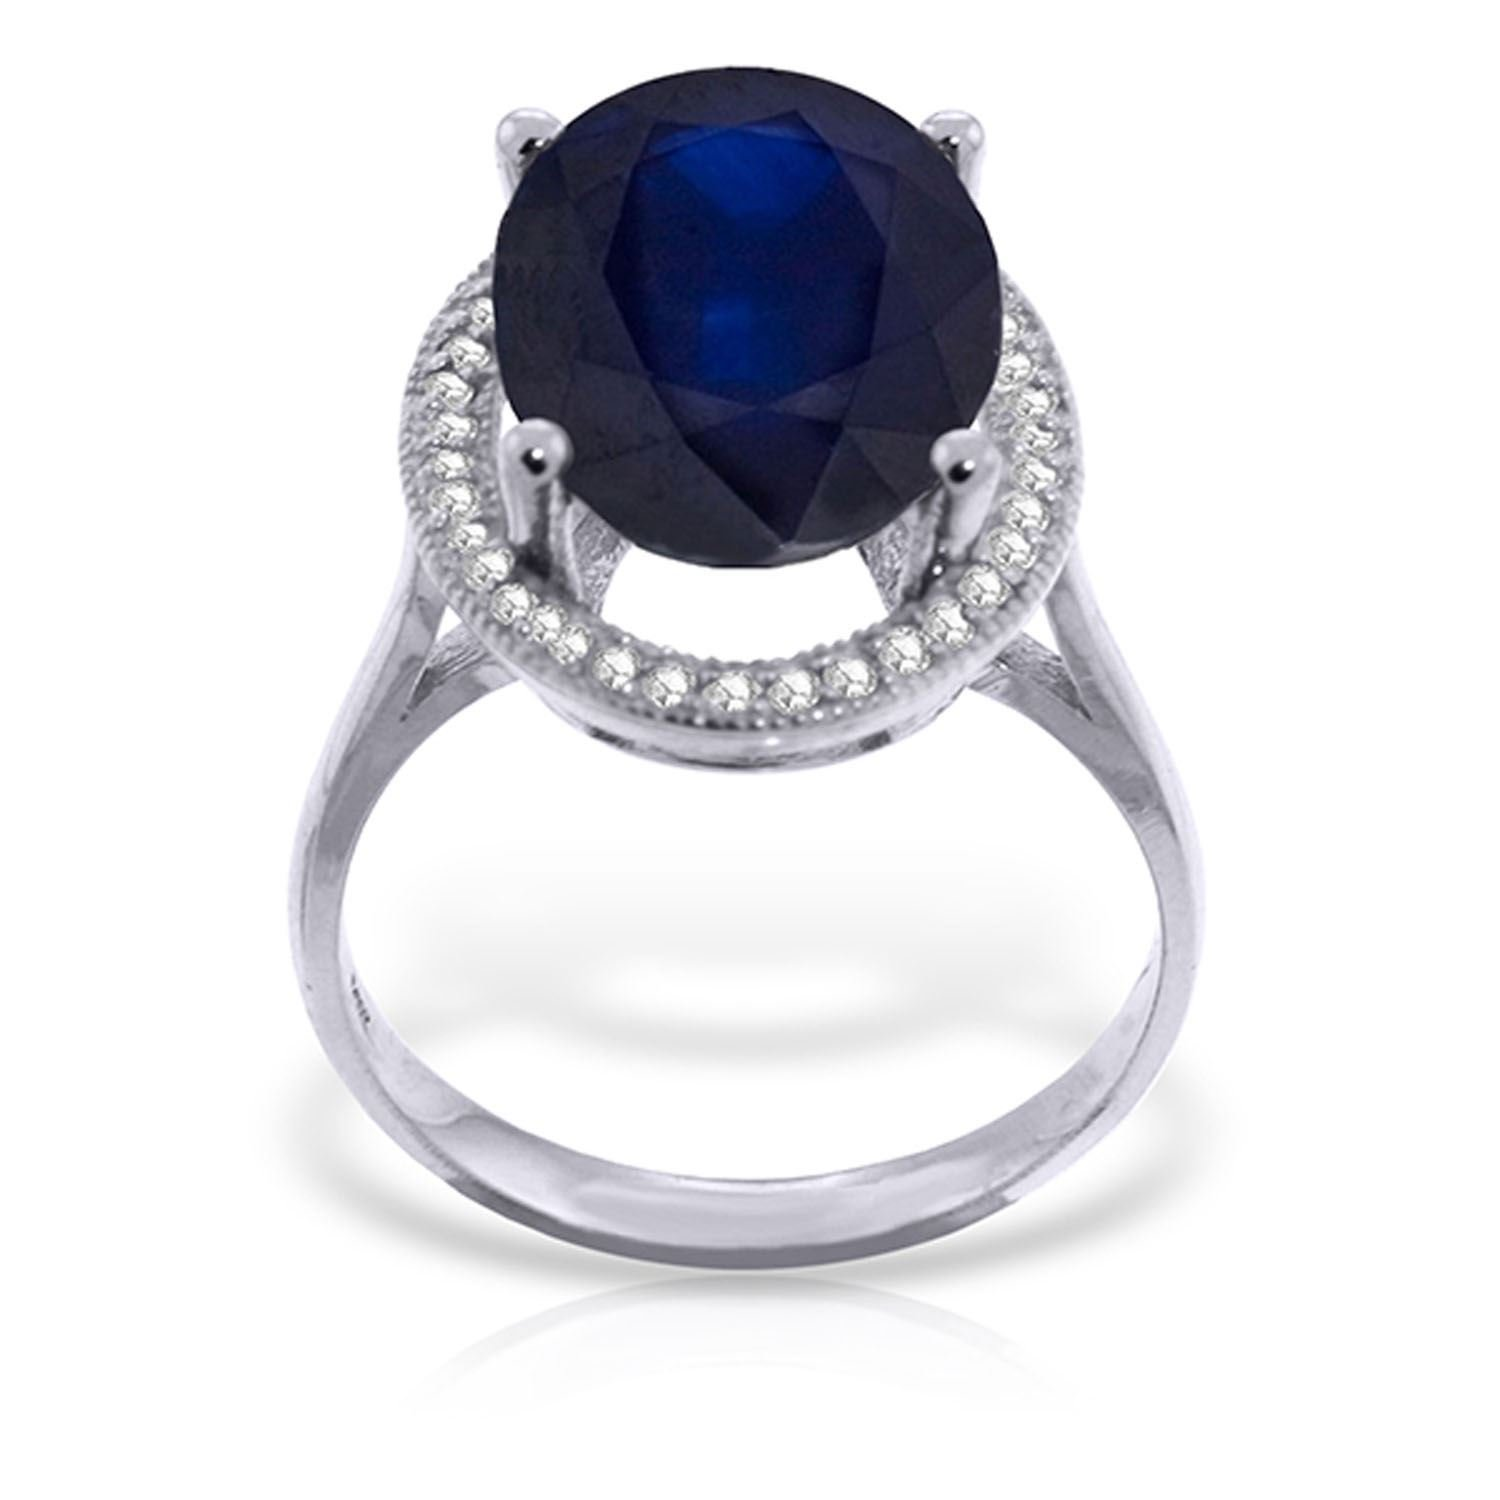 ALARRI 6.58 Carat 14K Solid White Gold Love Is Generous Sapphire Diamond Ring With Ring Size 6 by ALARRI (Image #1)